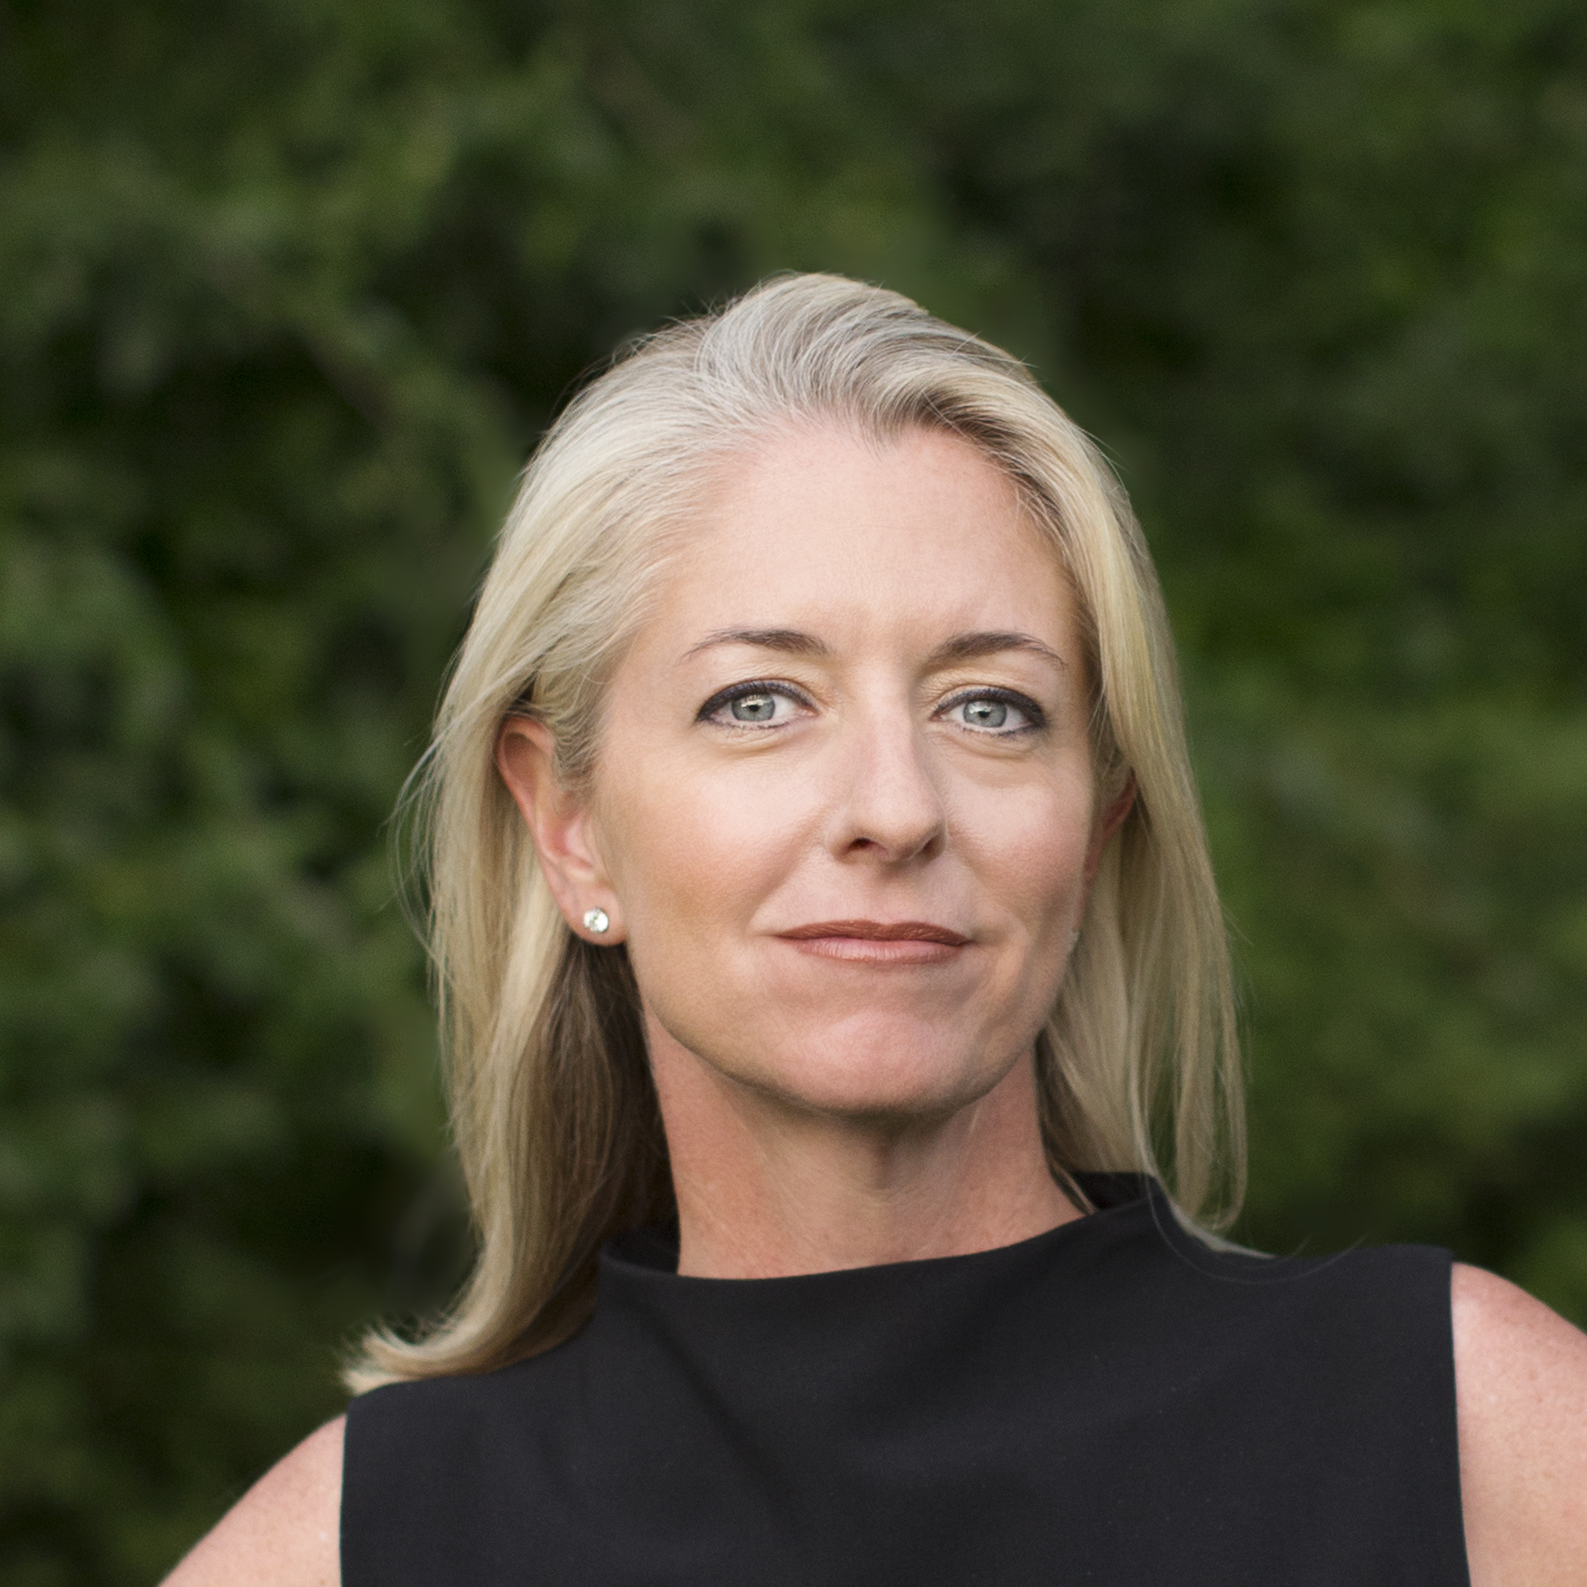 Healthcare Fundraising Leader Catherine Callagy Joins Hss As Chief